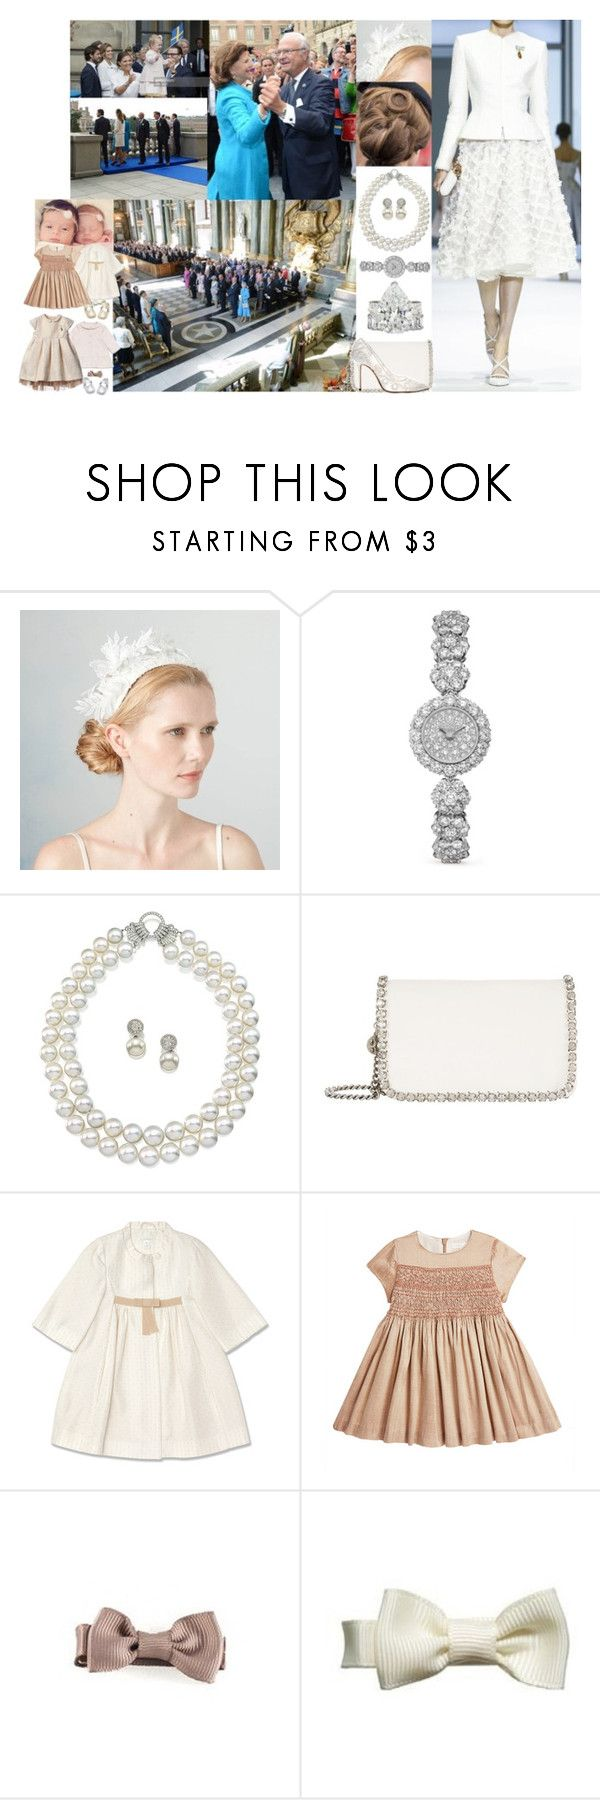 """""""Attending a Te Deum in Connection with her Father-in-law's 40th Jubilee then Greeting those Gathered in the Lejonbacken and Taking Part in the City of Stockholm's Jubilee Celebration, Dancing in the Palace with Carl-Philip, Ava, Lily, and the Whole Family"""" by louiseingrid-ofdenmark ❤ liked on Polyvore featuring RALPH, STELLA McCARTNEY, Manolo Blahnik, Claudette and Marie-Chantal"""